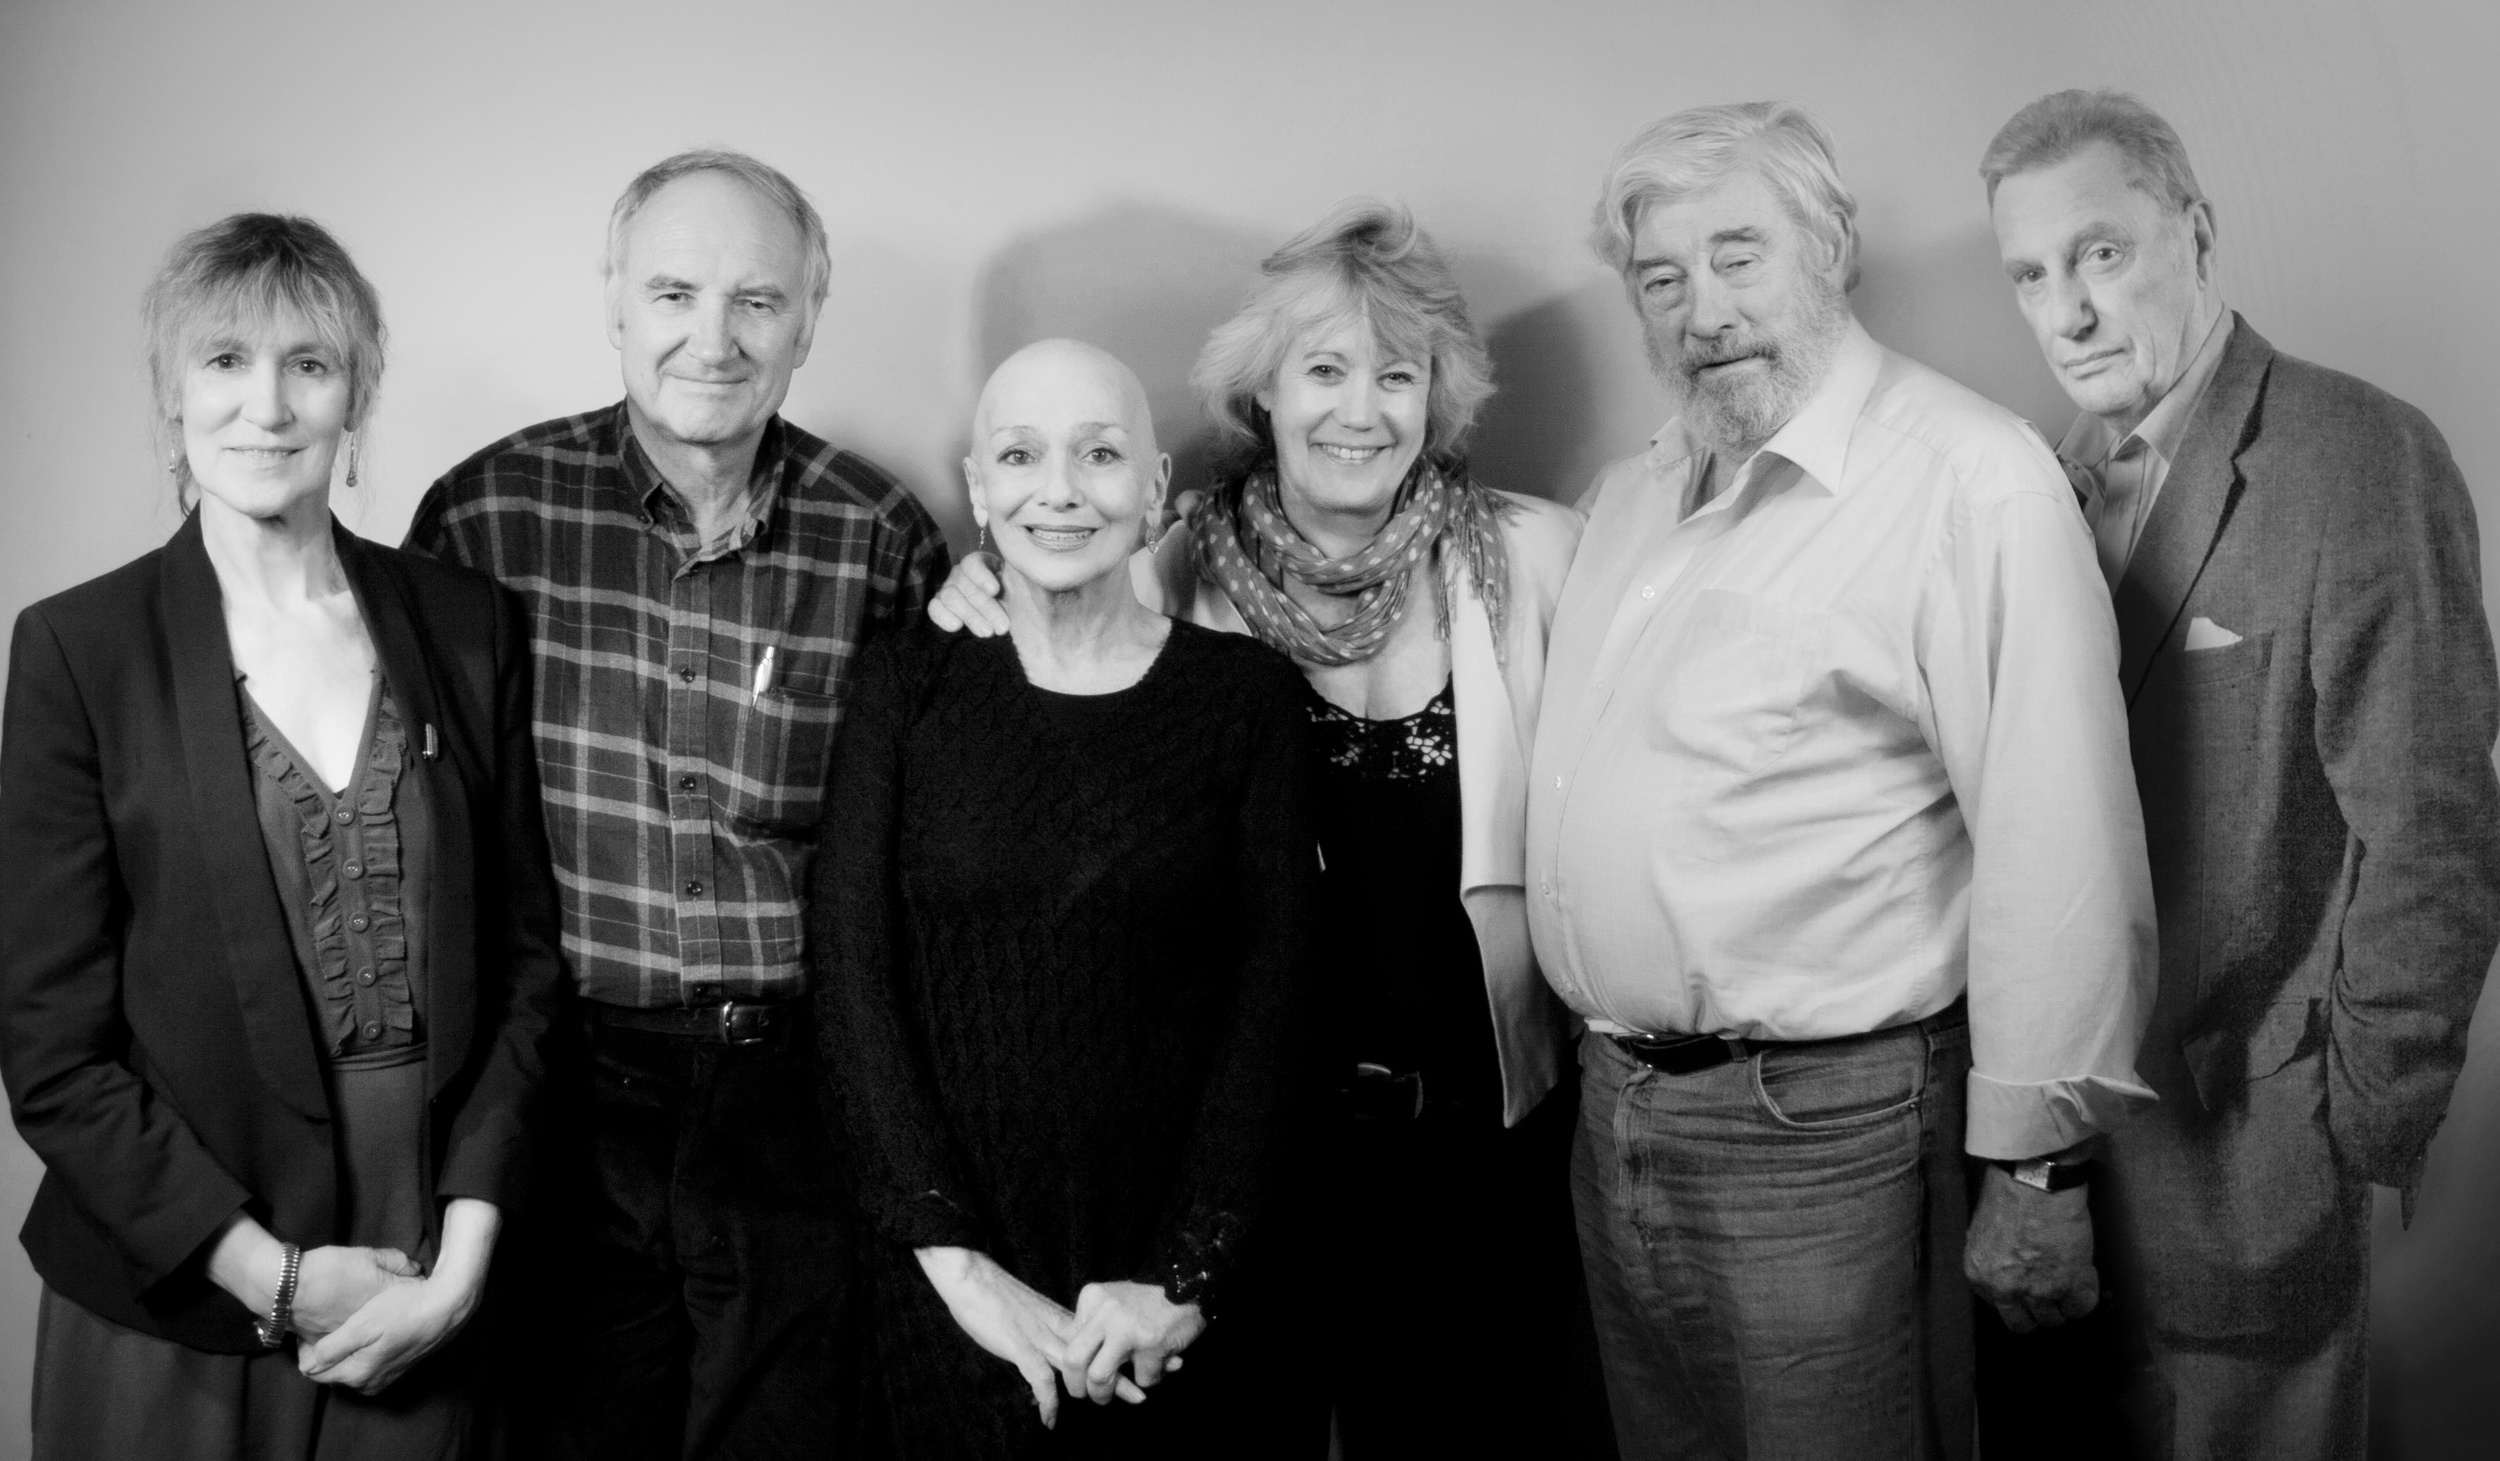 Jan Chappell, Michael Keating, Jacqueline Pearce, Sally Knyvette, Gareth Thomas, Paul Darrow.